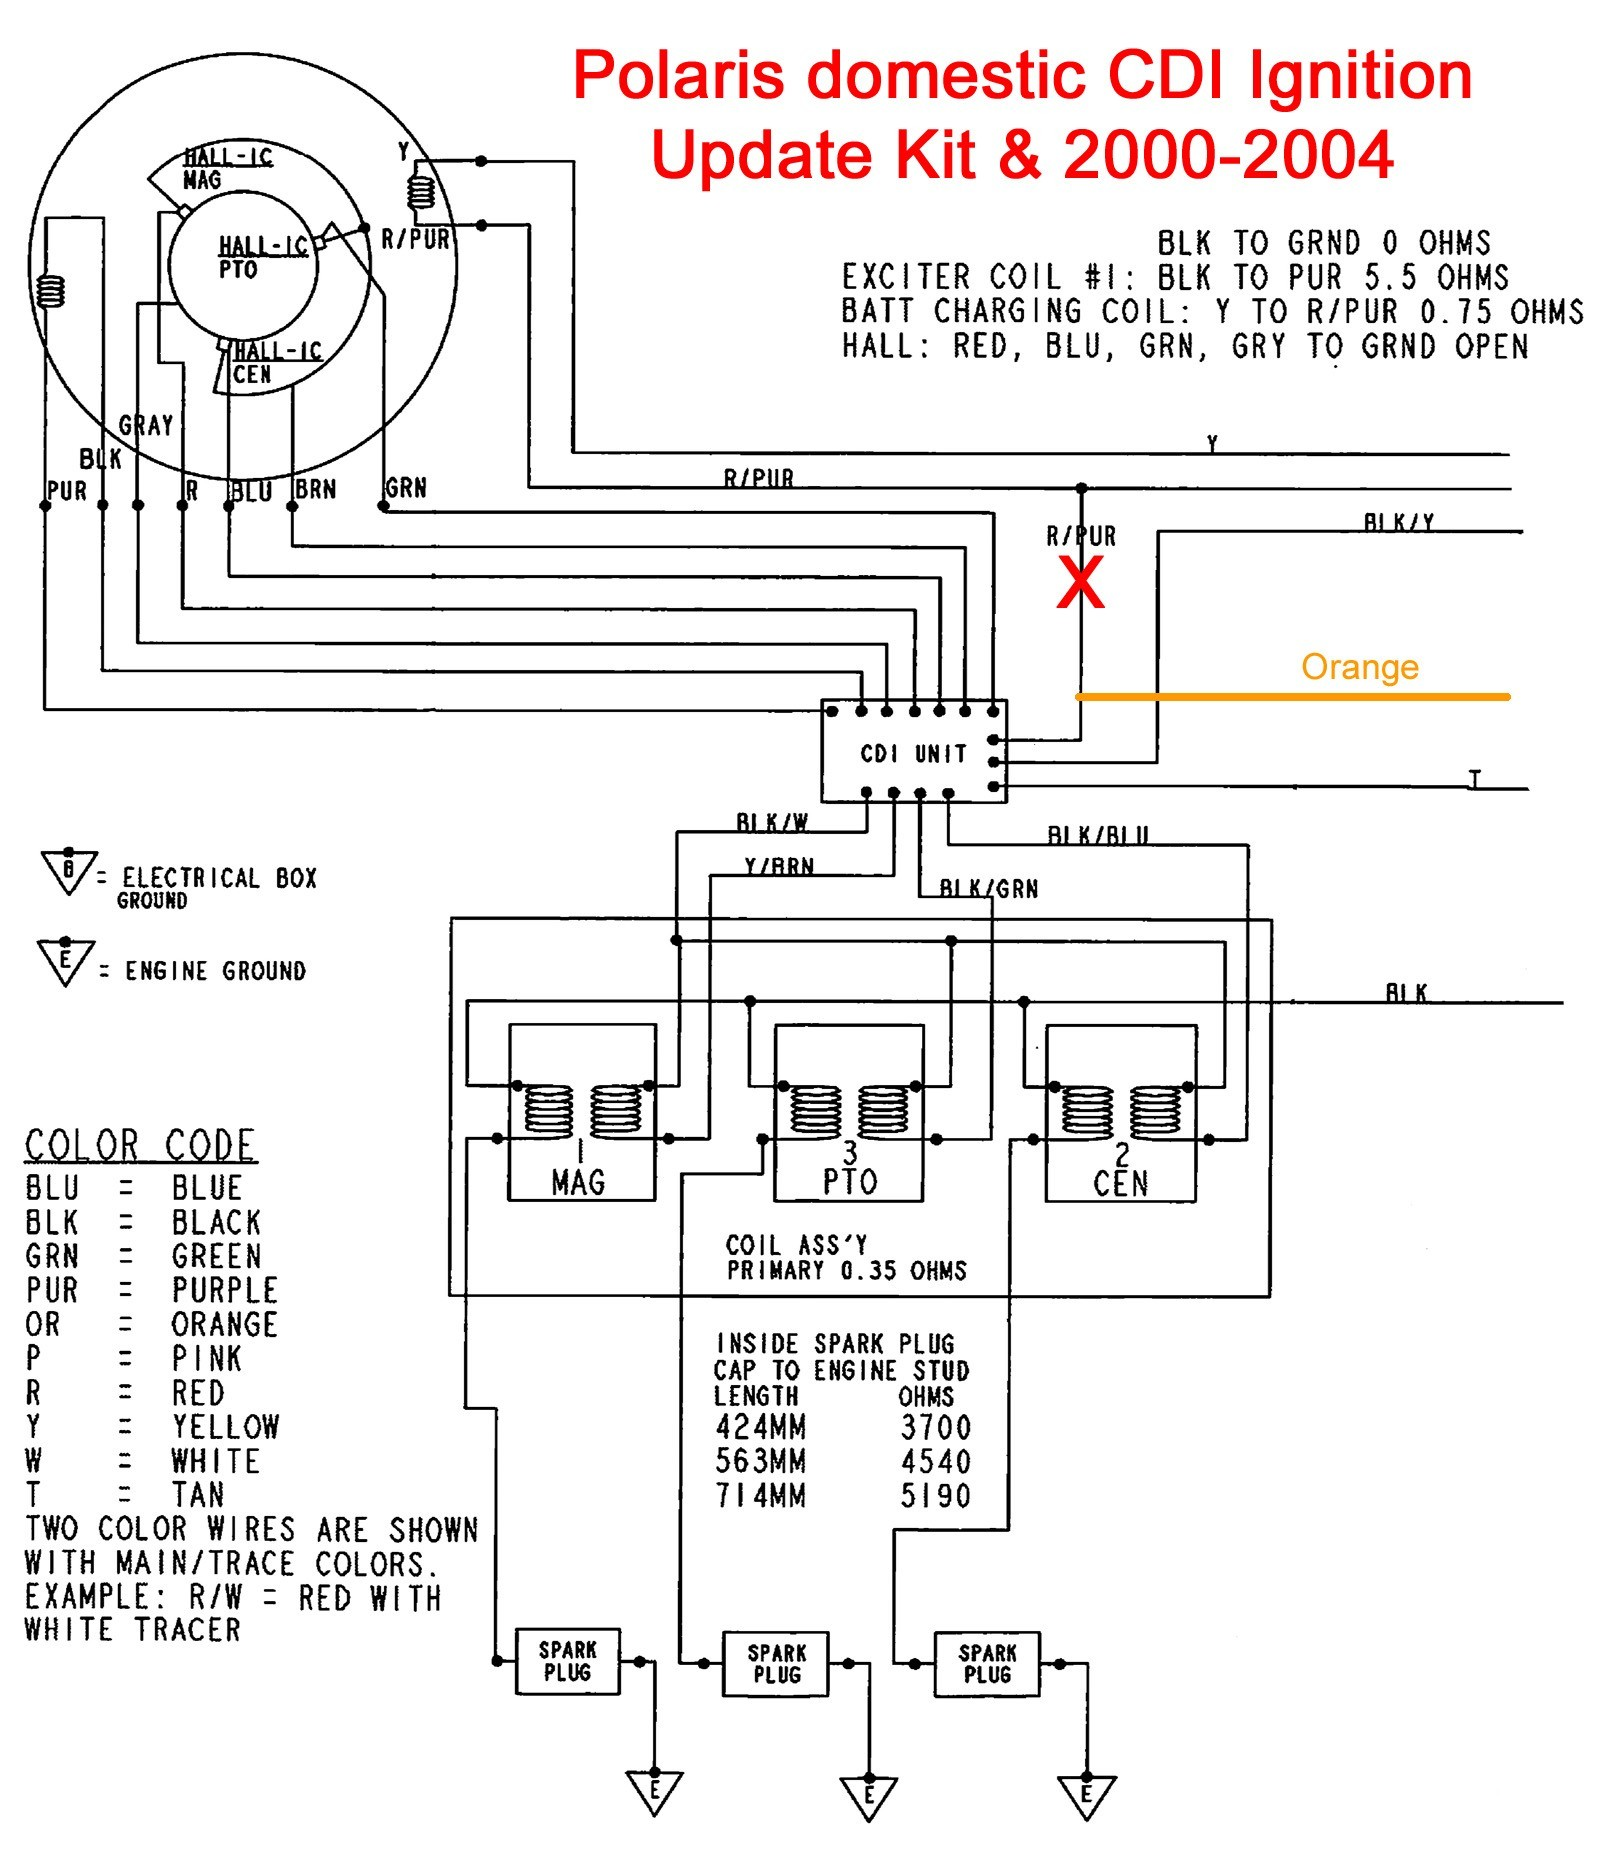 electrical engineering diagram electrical block diagram rh detoxicrecenze com Electrical Engineering Services Electrical Engineering Symbols